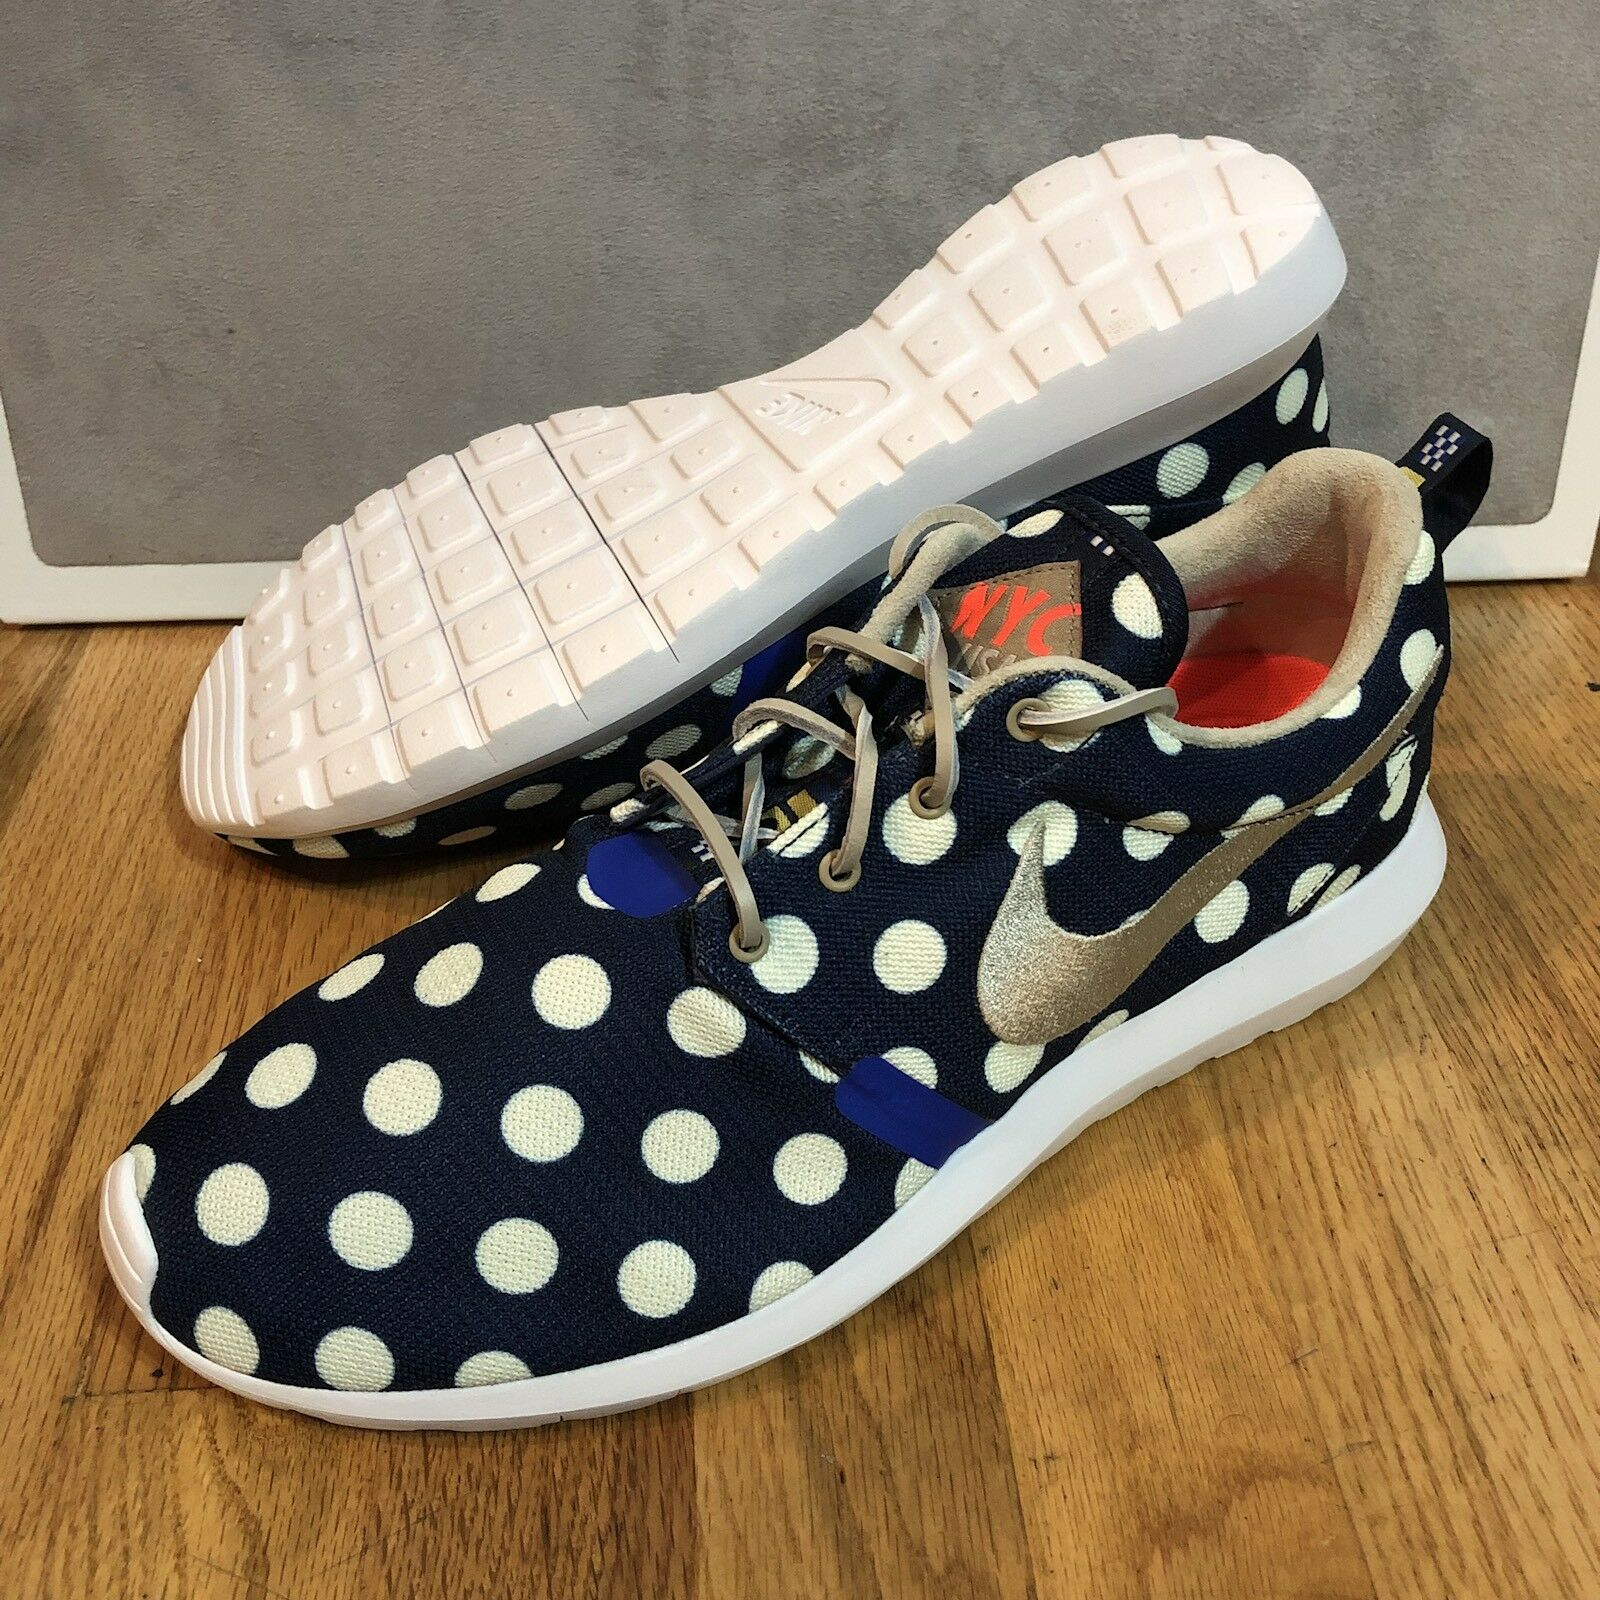 Nike Rosherun NM 11.5 City QS Mens Size 11.5 NM New DS Running Shoes Polka Navy White a2bcff